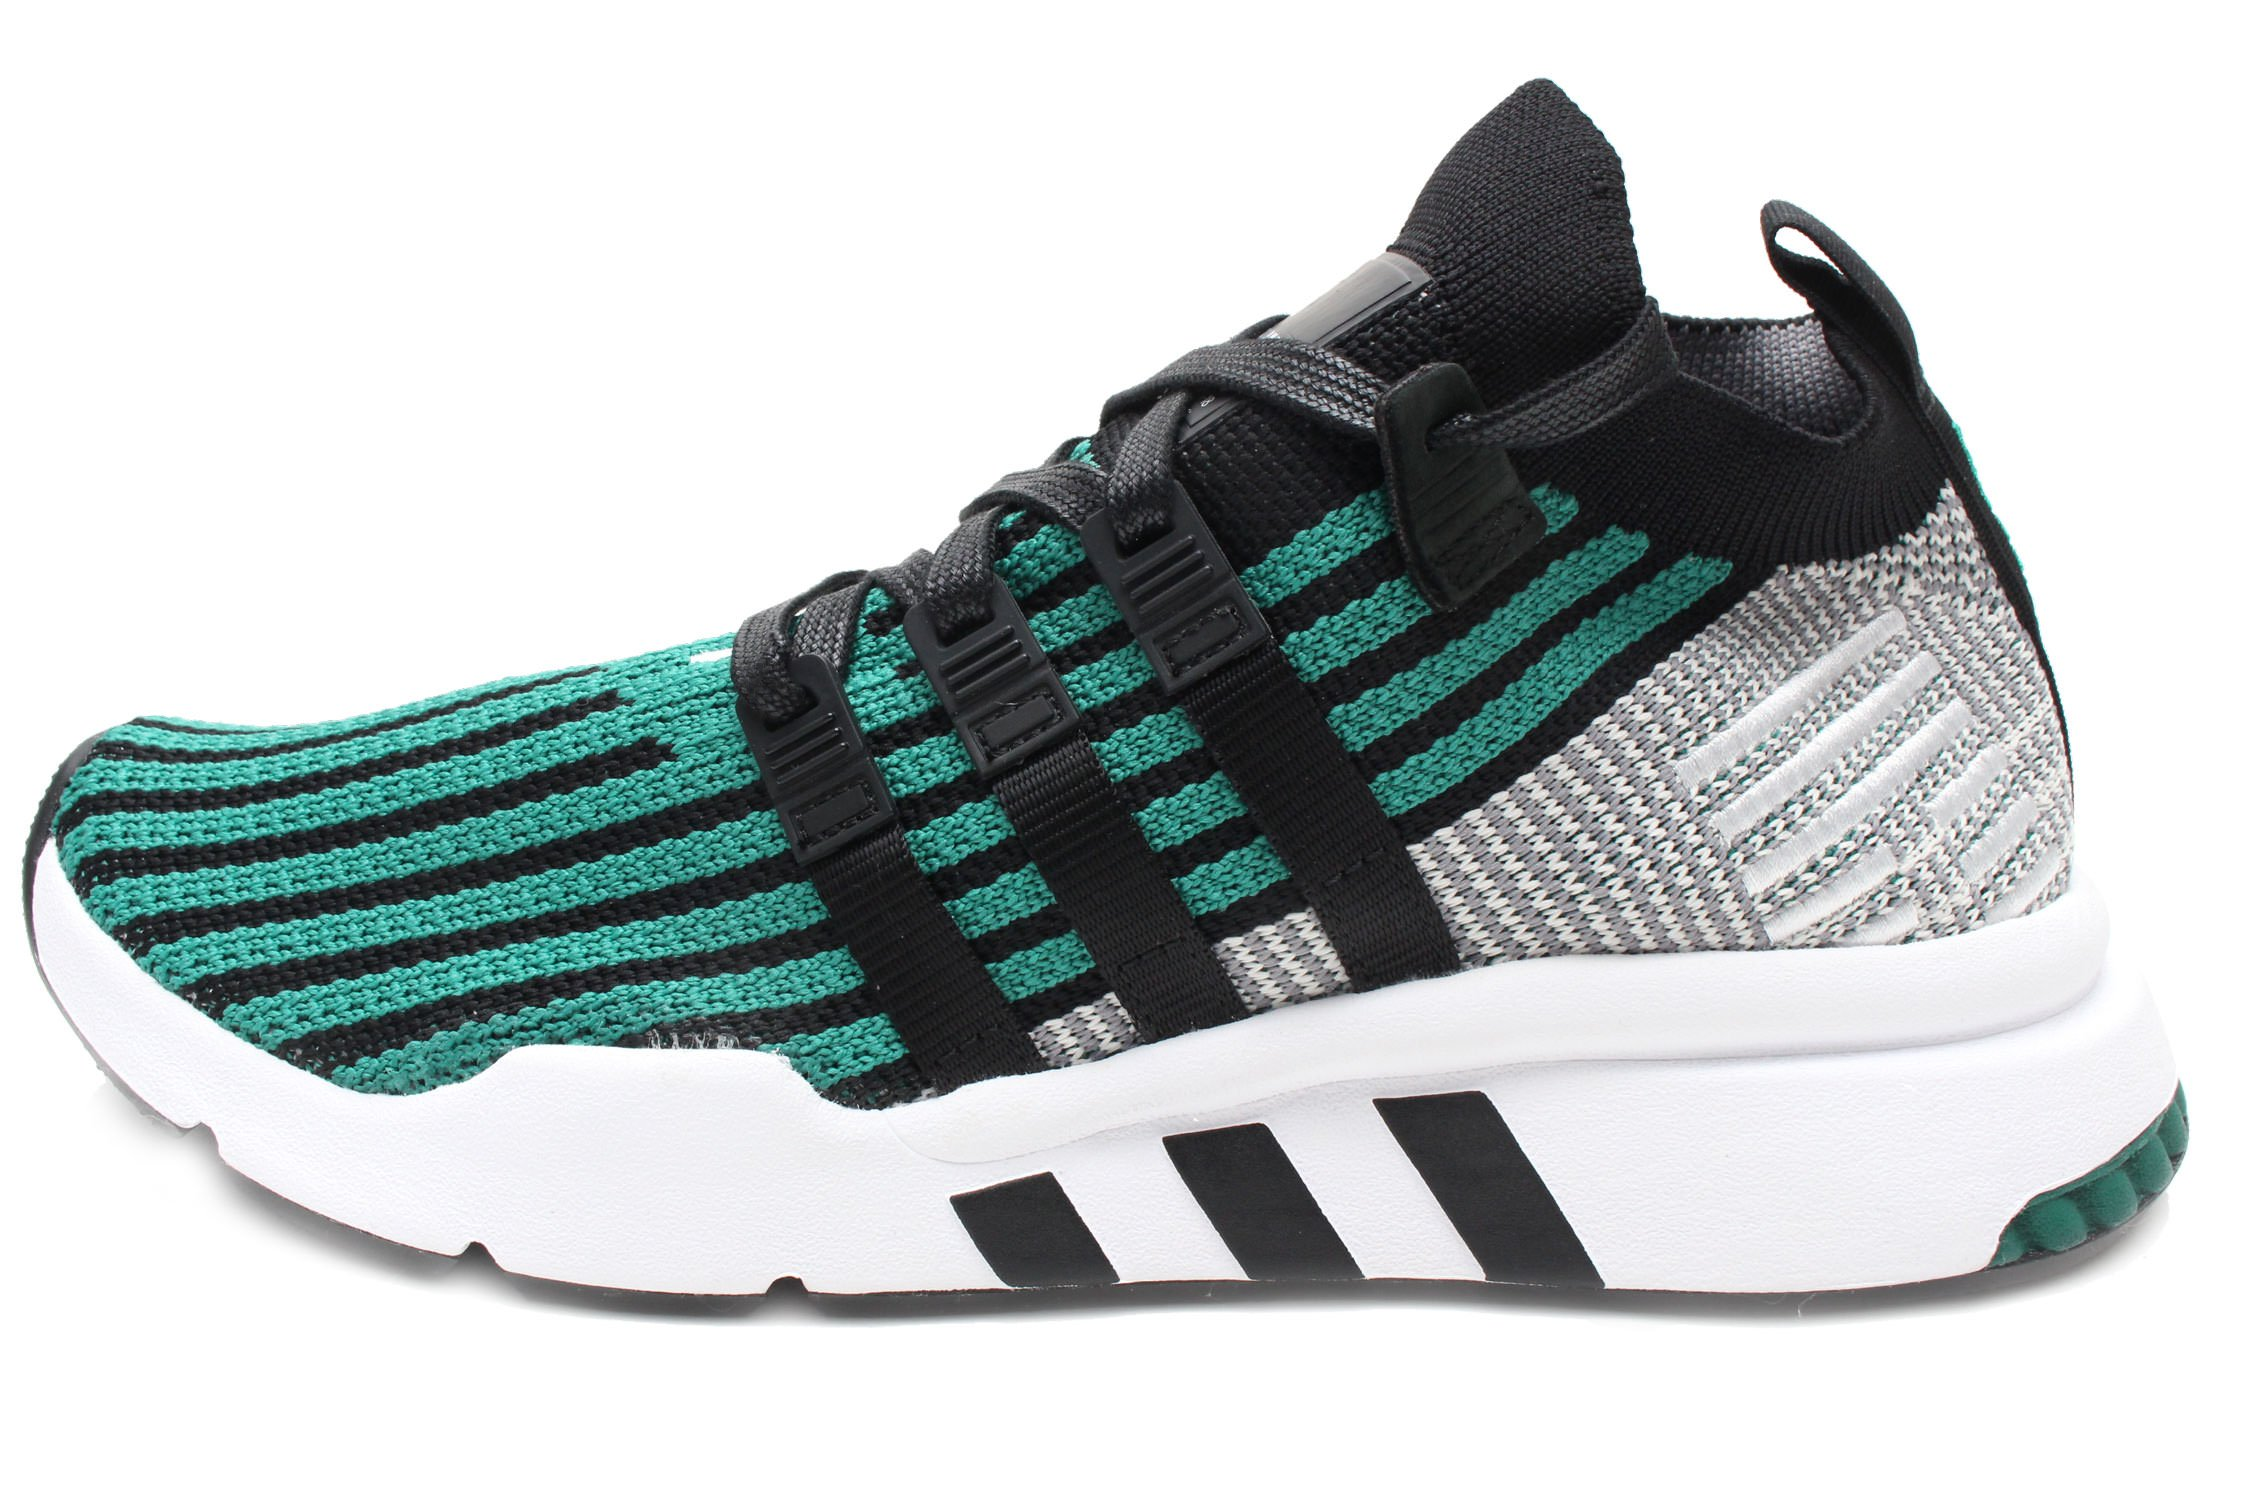 premium selection 4cd64 28019 Galleon - Adidas Mens EQT Support Mid ADV PK Originals Core BlackCore  BlackGreen Running Shoe 11 Men US